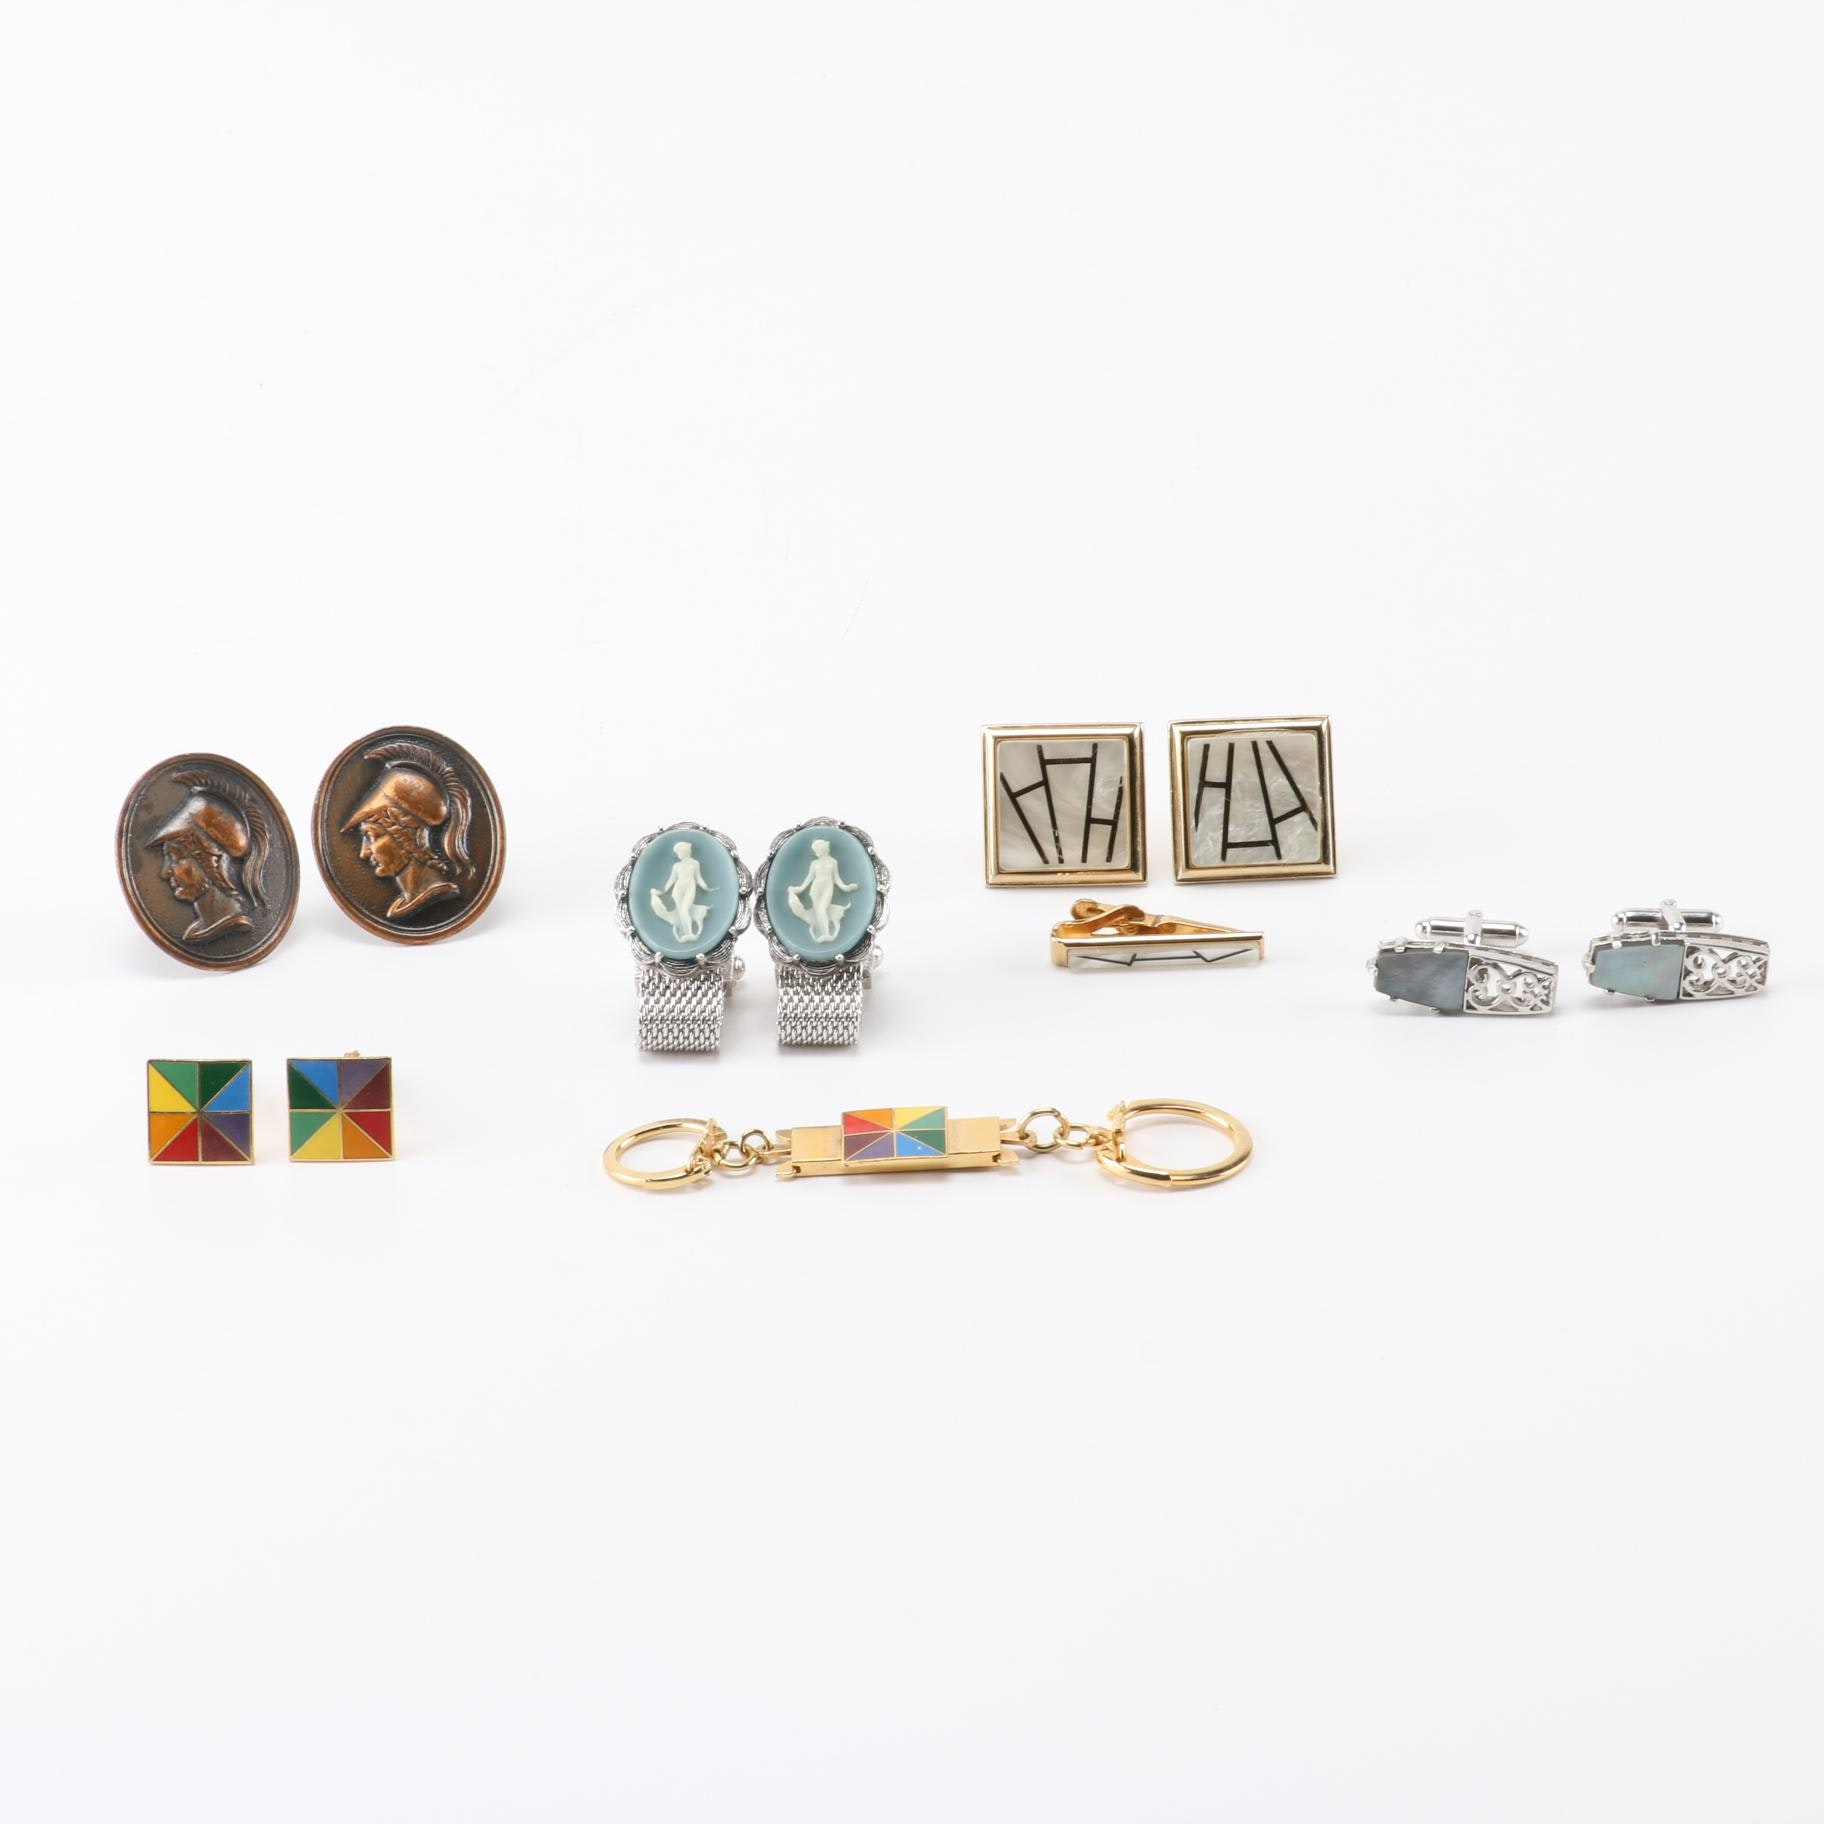 Cufflinks and Other Accessories